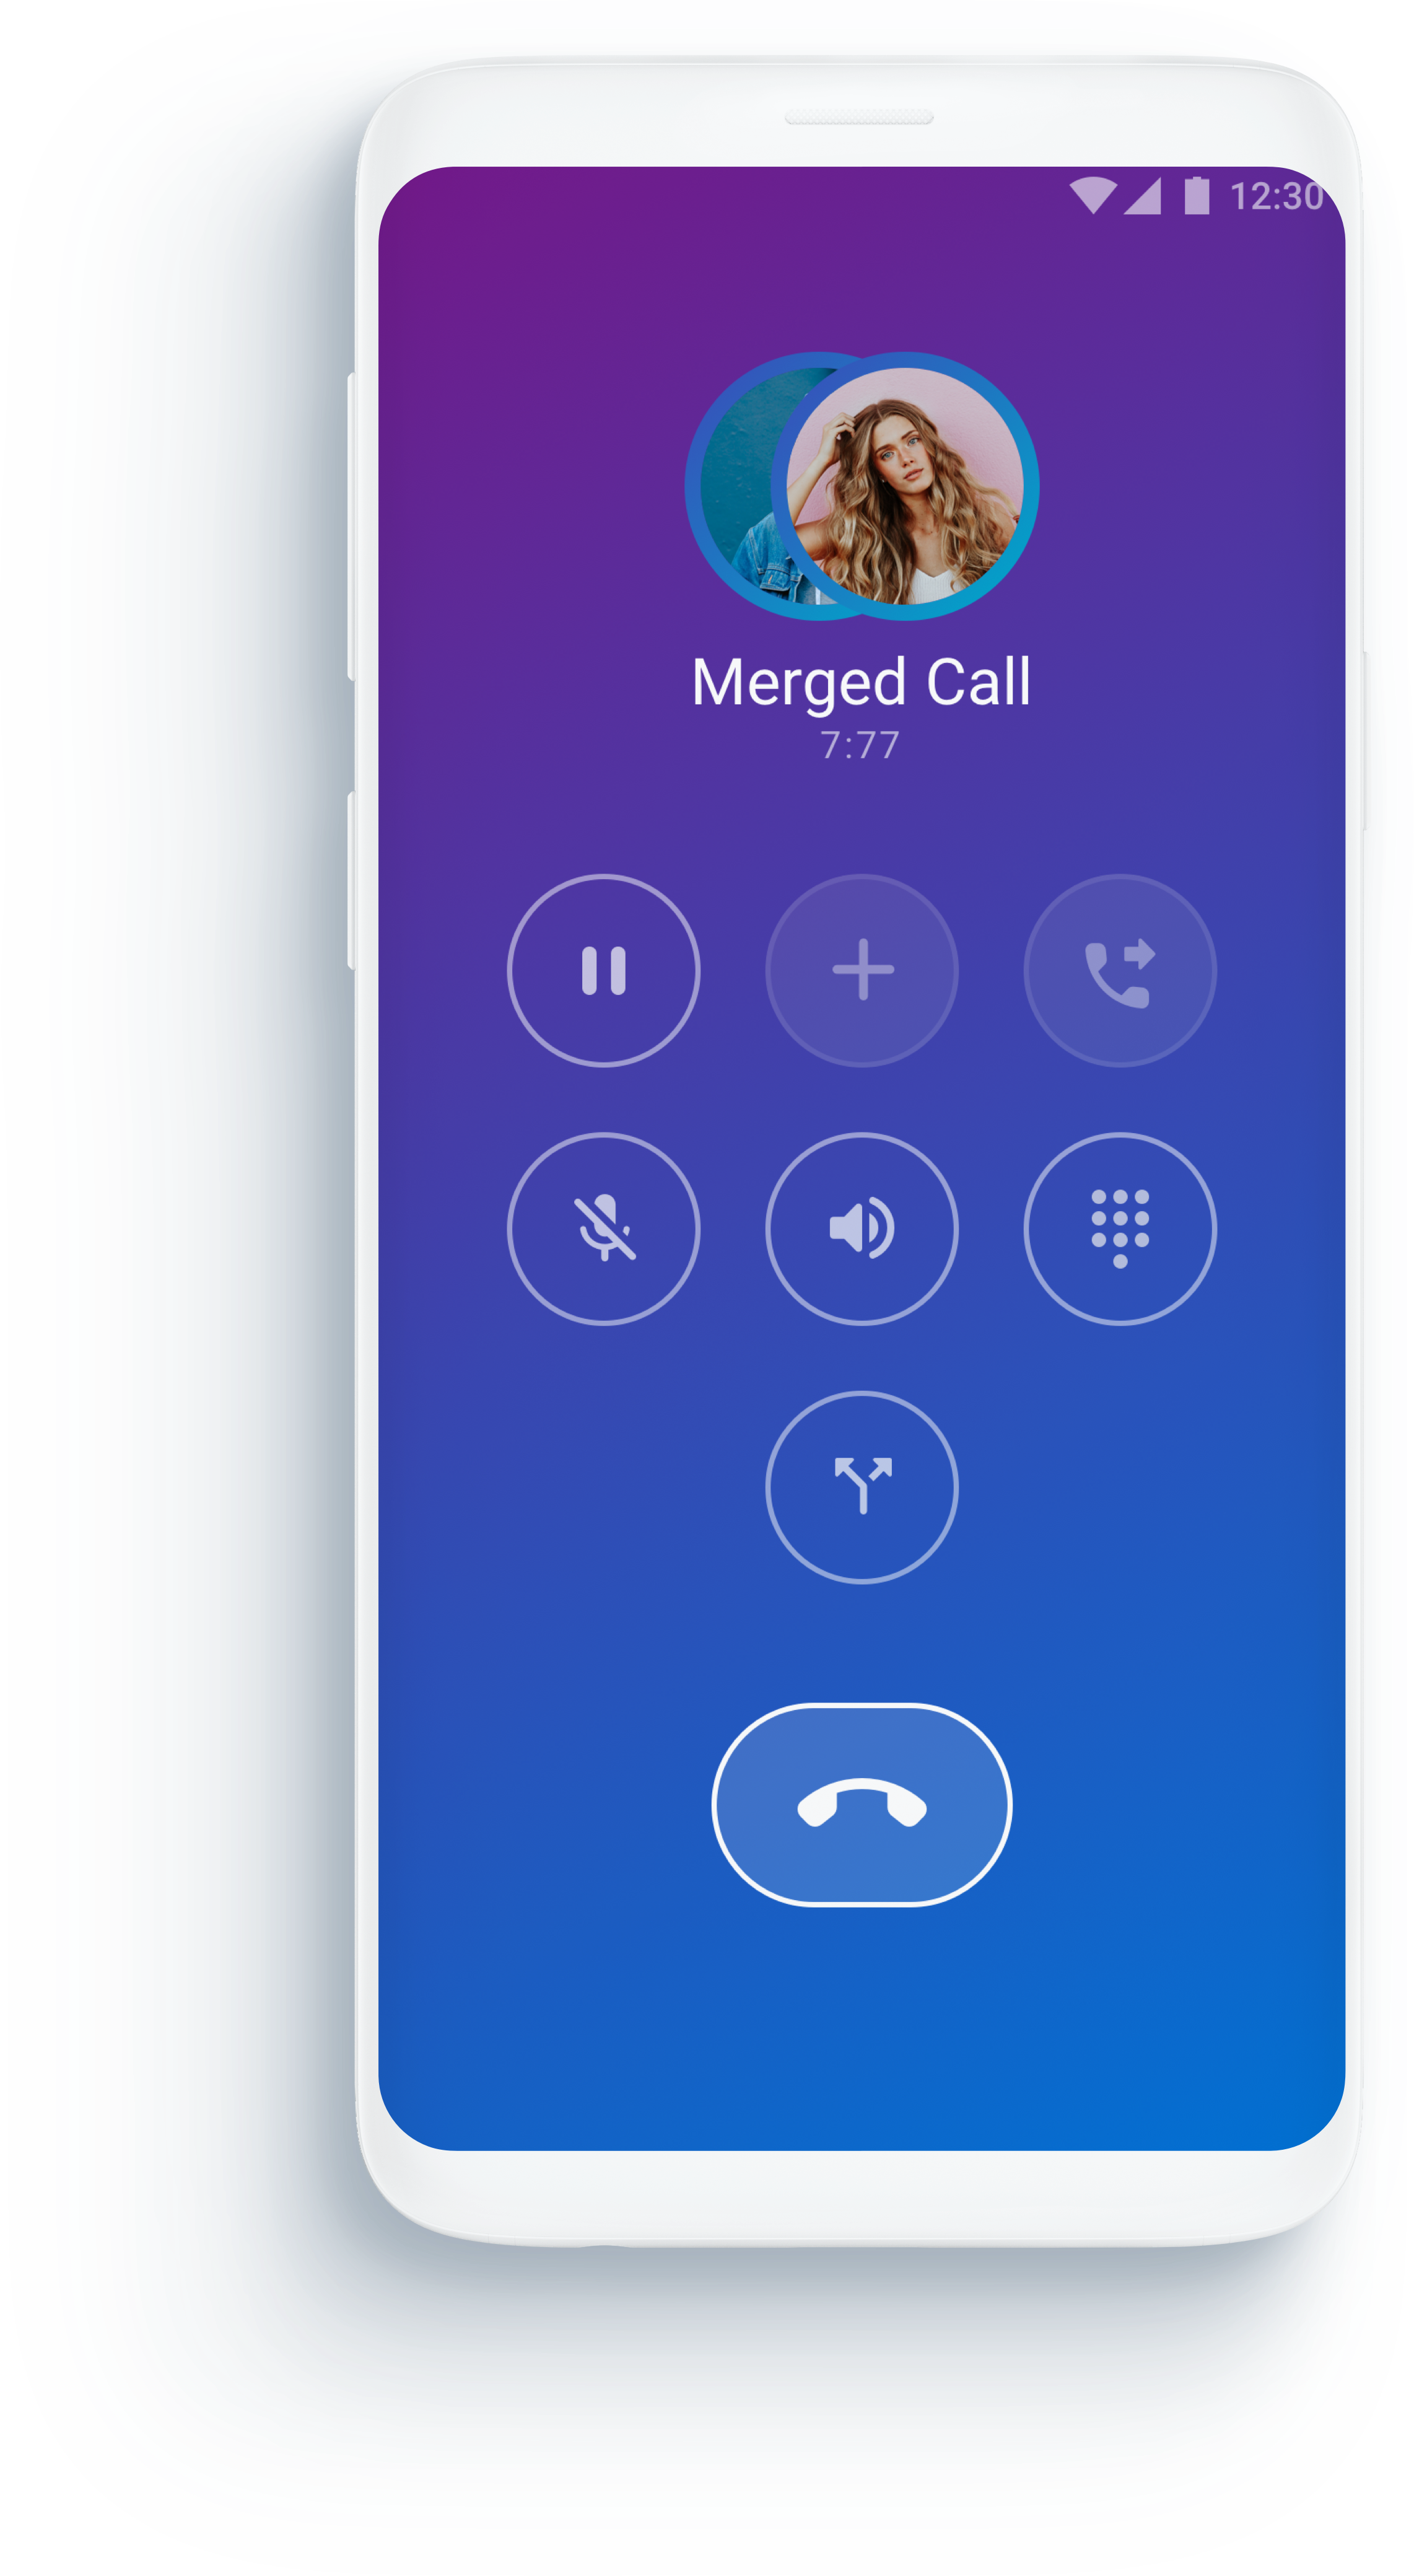 Merge_Call.png